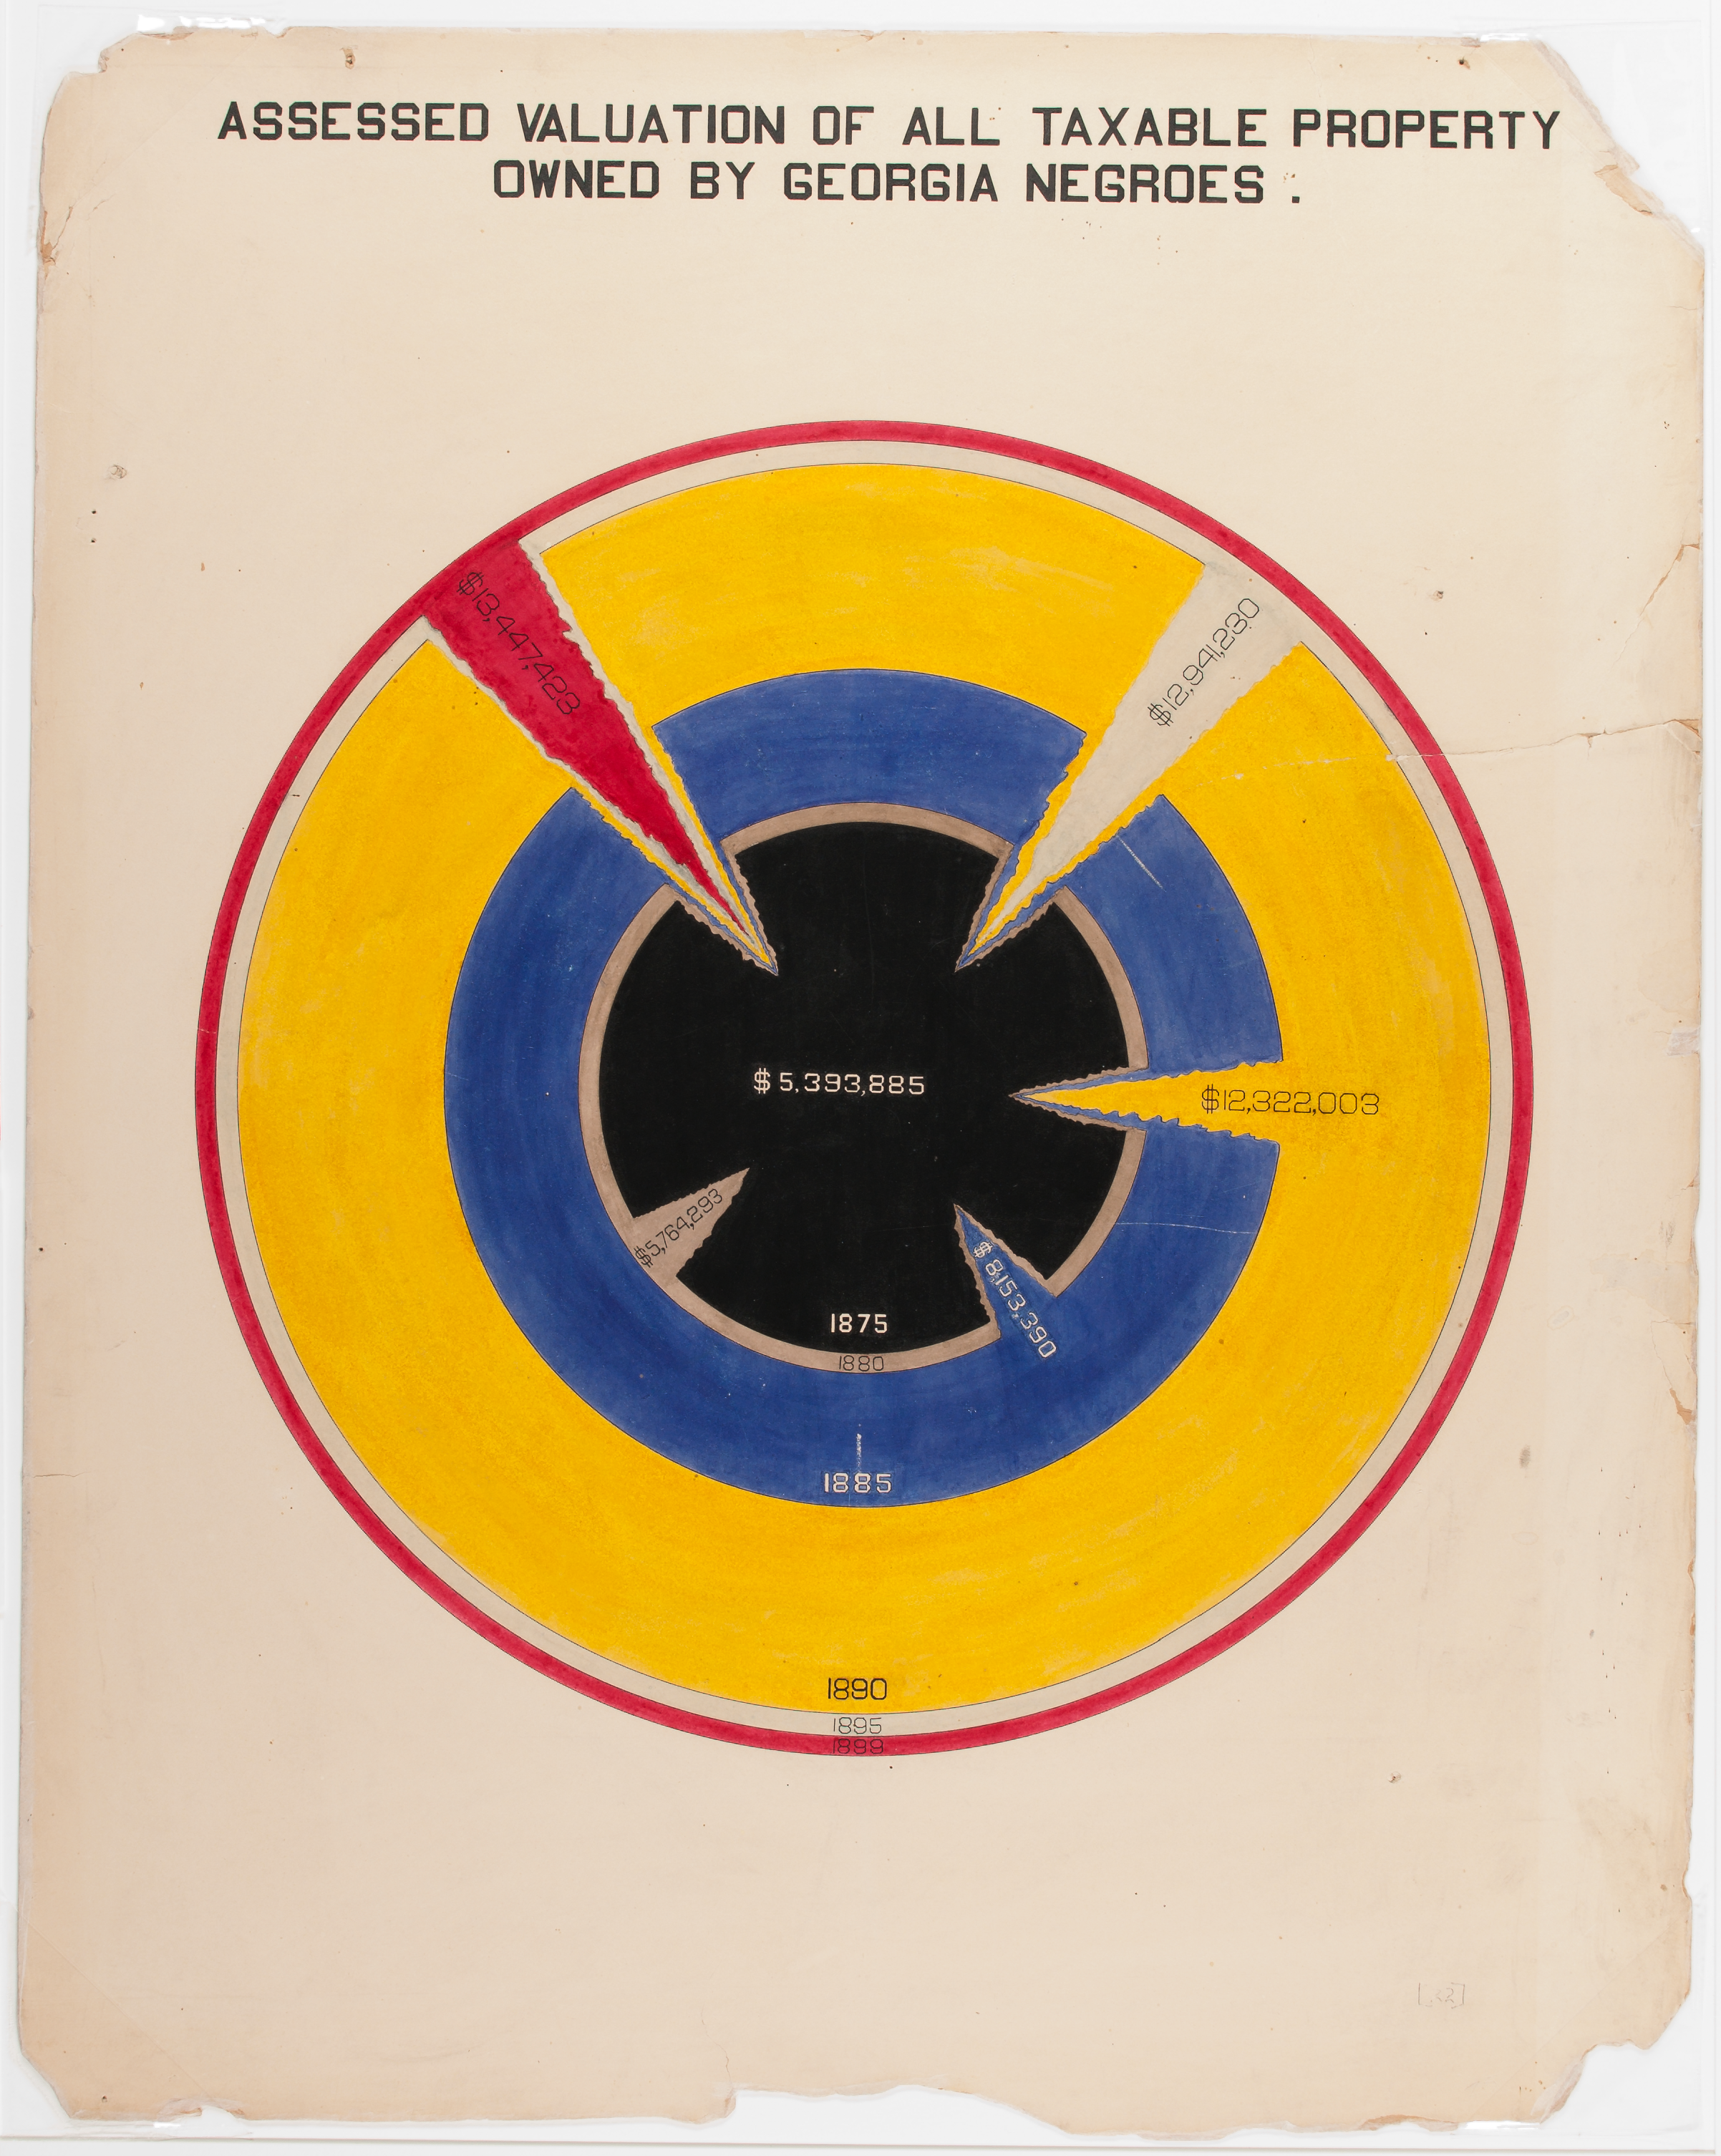 III. Exploring the Craft and Design of W.E.B. Du Bois' Data Visualizations - A detailed examination on how Du Bois drafted his charts, a consideration of this work as a precursor to modernism, and the discussion of a series of charts on land ownership and value.